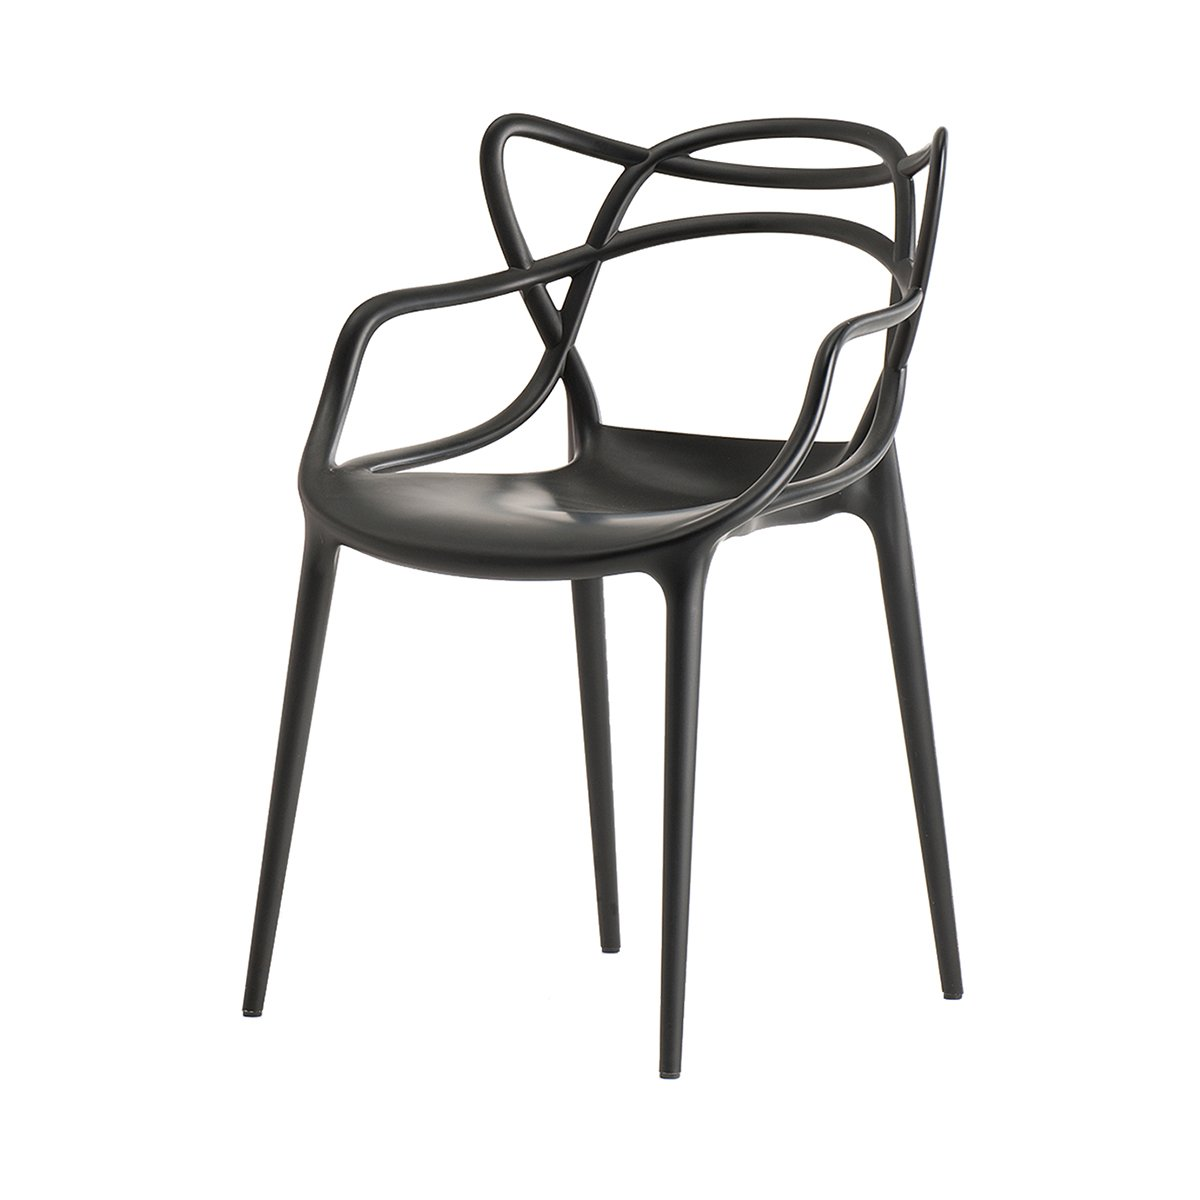 chair masters kartell black amazon co uk kitchen home